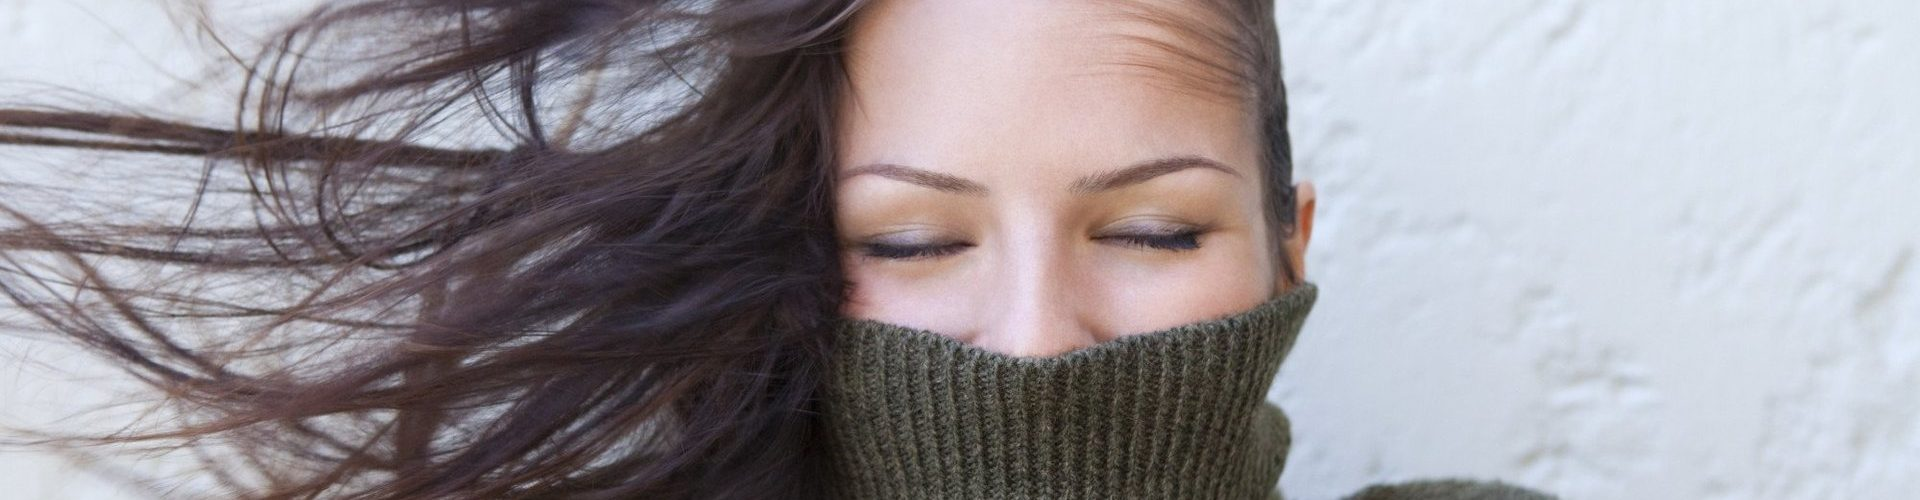 Home remedies for Healthy Hair in Winter